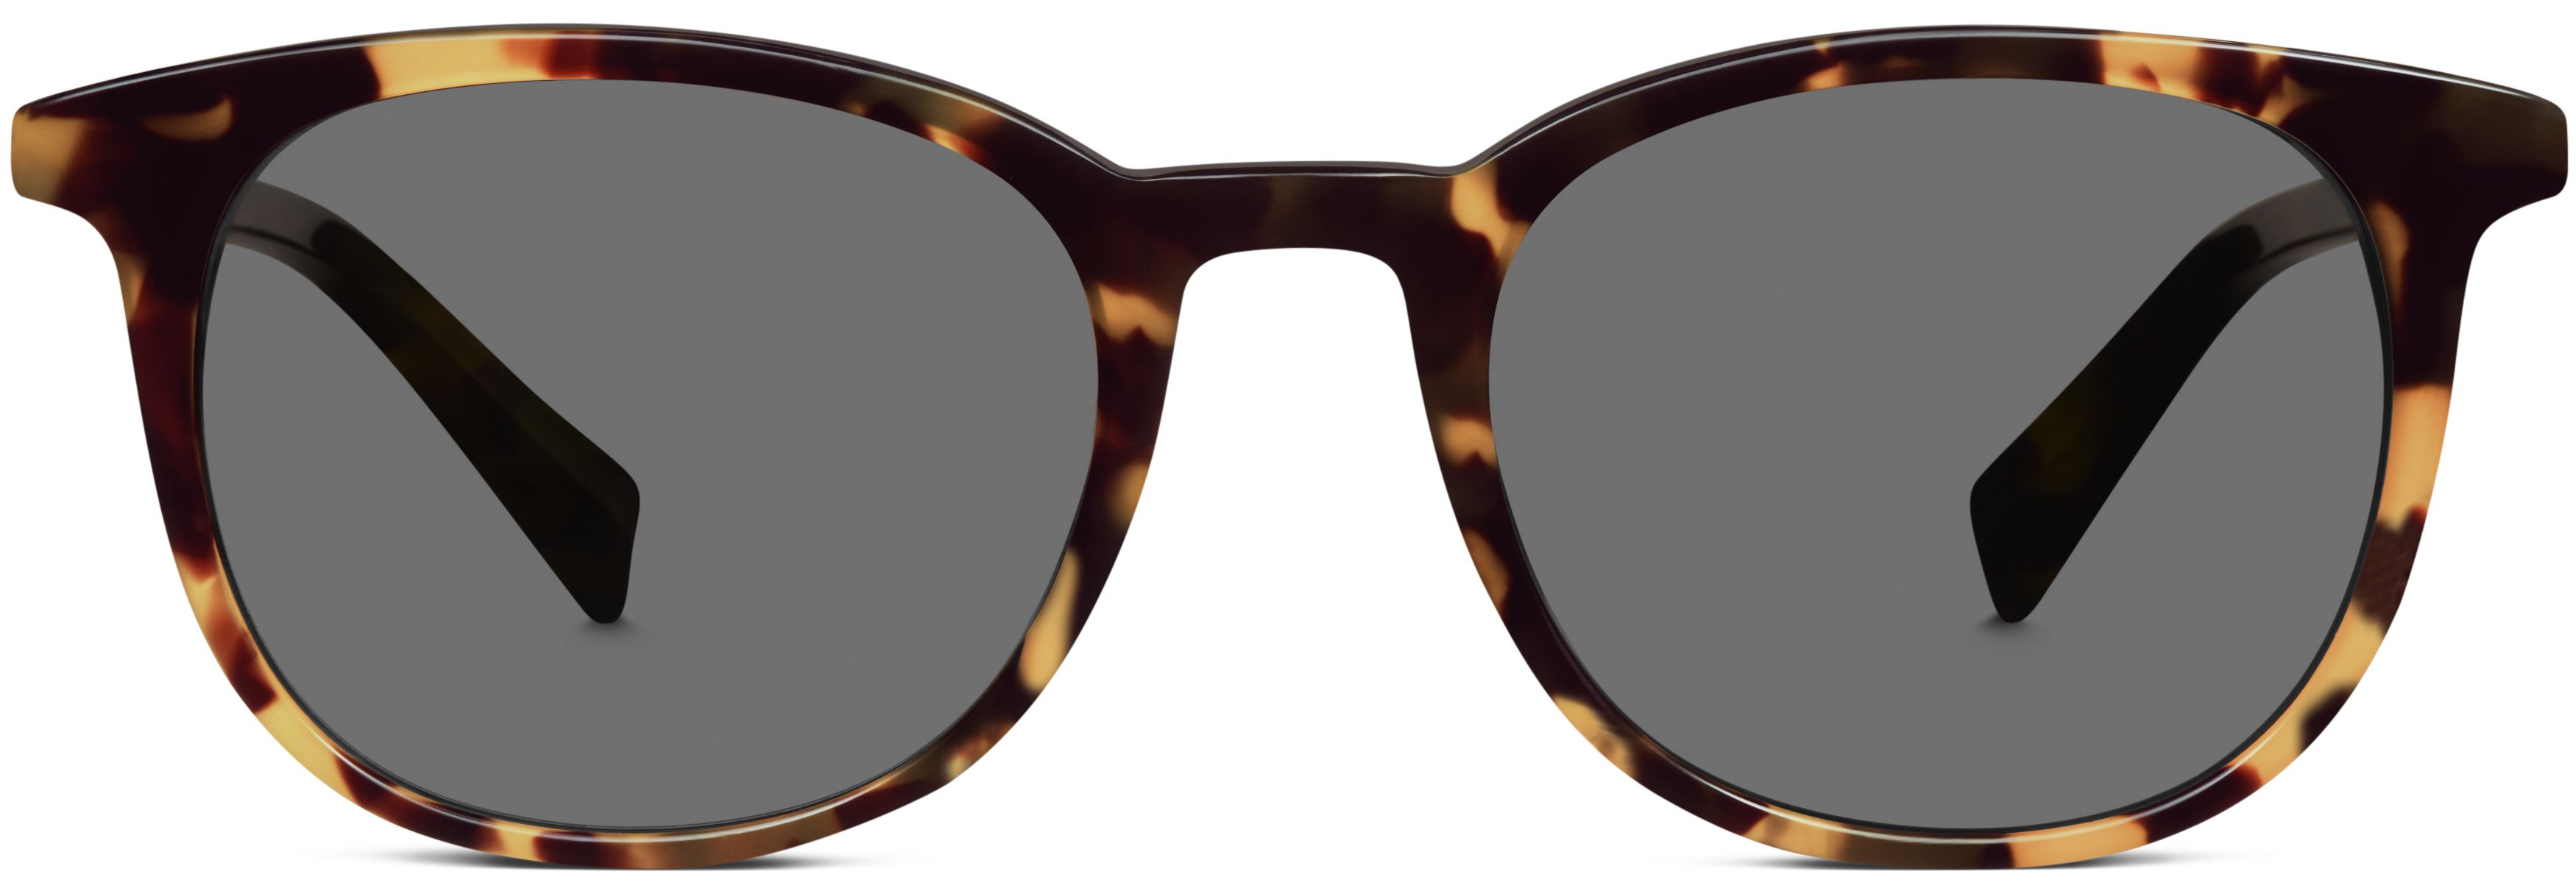 Durand Sunglasses in Woodland Tortoise with Classic Grey lenses for ...